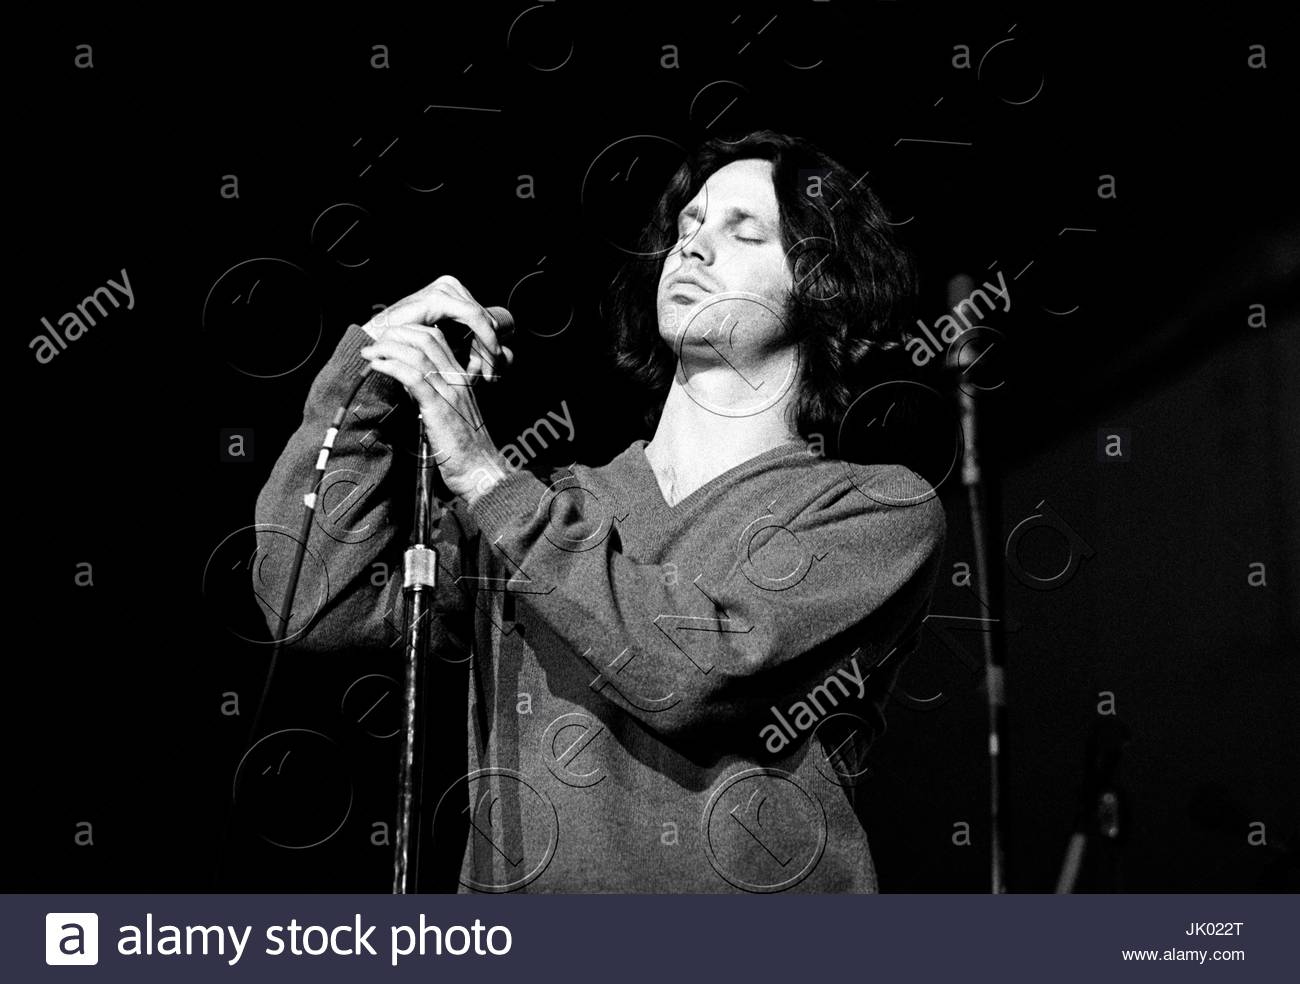 Jim Morrison of The Doors performing at the Boston Arena in Boston MA on April 10 1970. During this concert Jim Morrison asked the audience if  anyone ...  sc 1 st  Alamy & Jim Morrison of The Doors performing at the Boston Arena in Boston ...